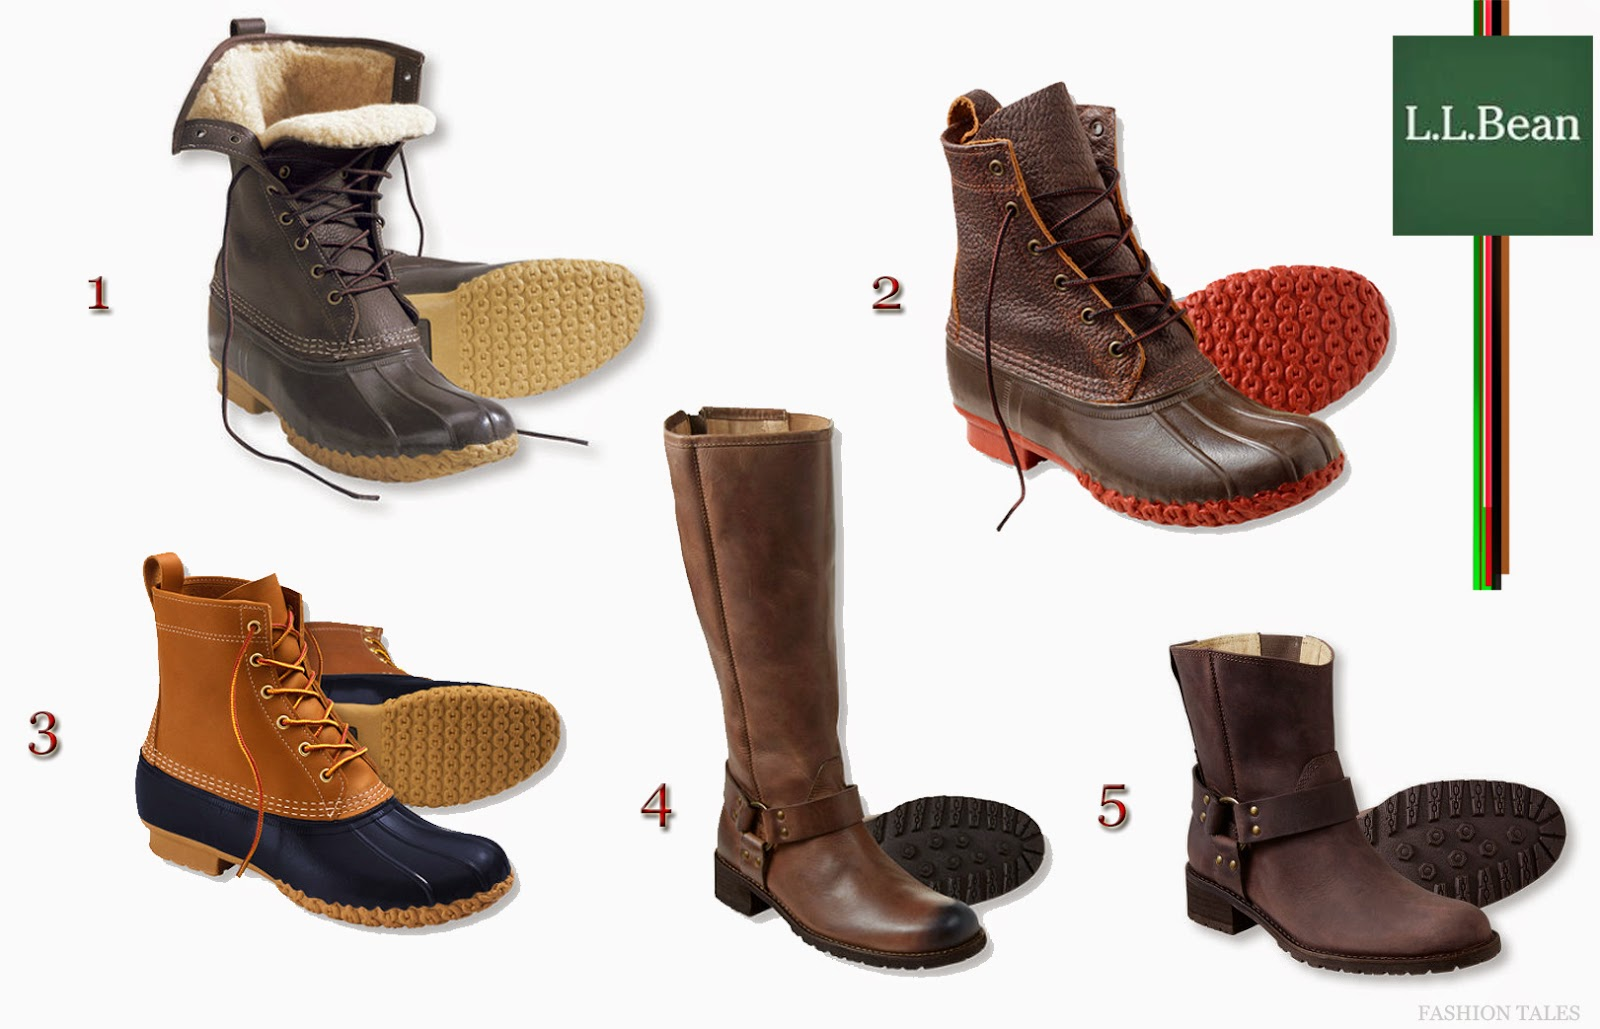 rugged styles trends outdoor fashion